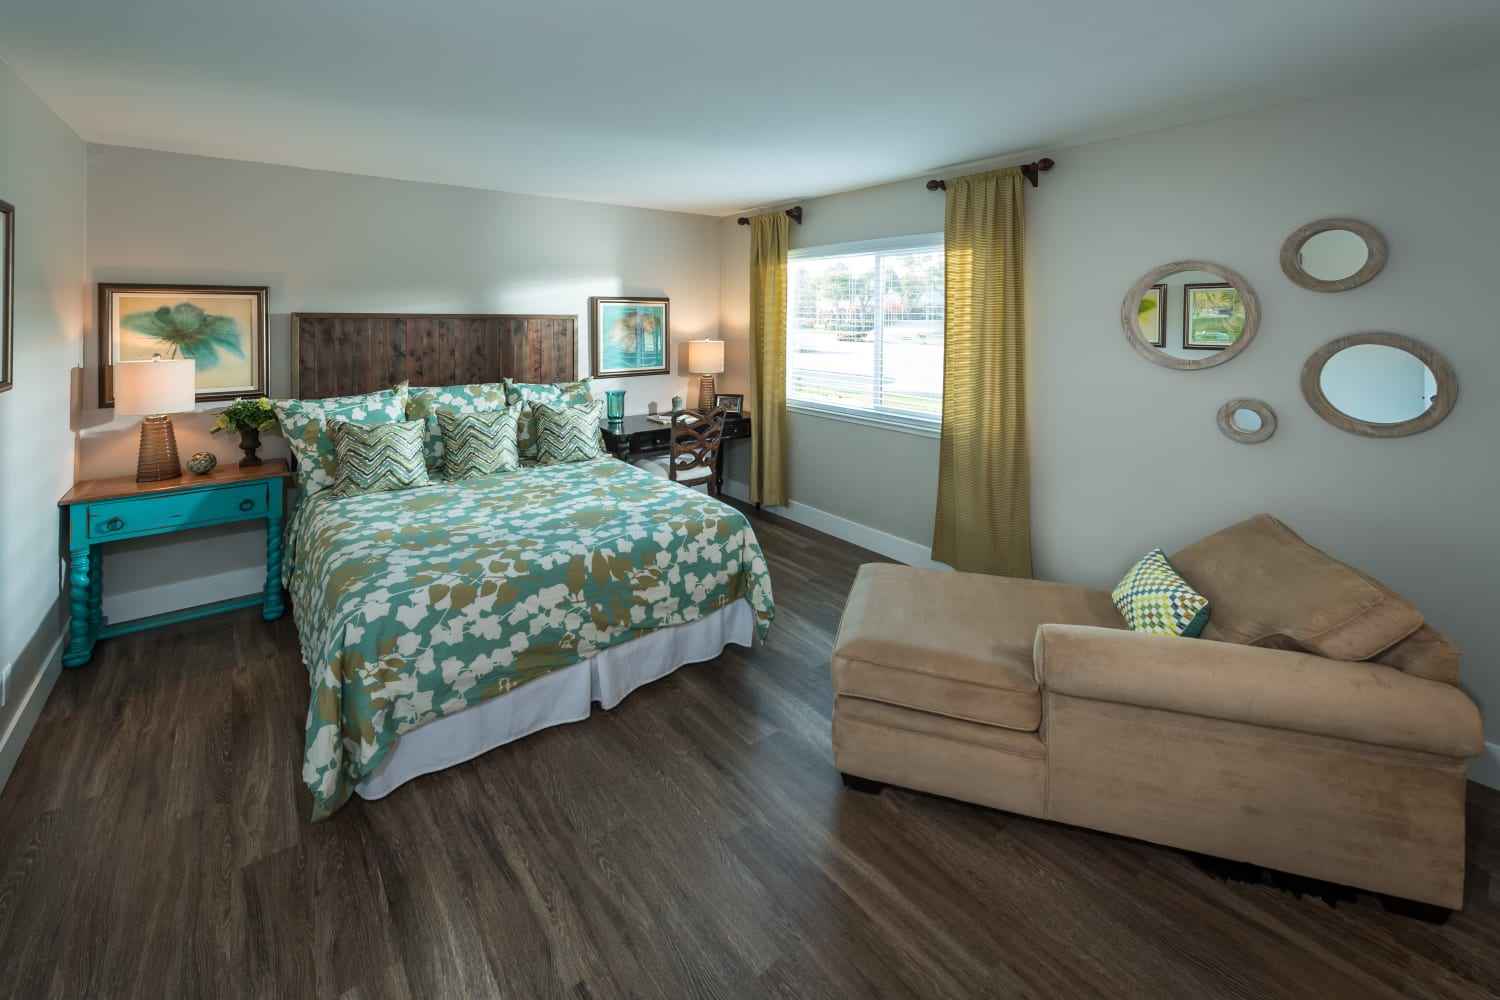 Harbor Cove Apartments in Foster City, California, offer spacious bedrooms complete with hardwood floors